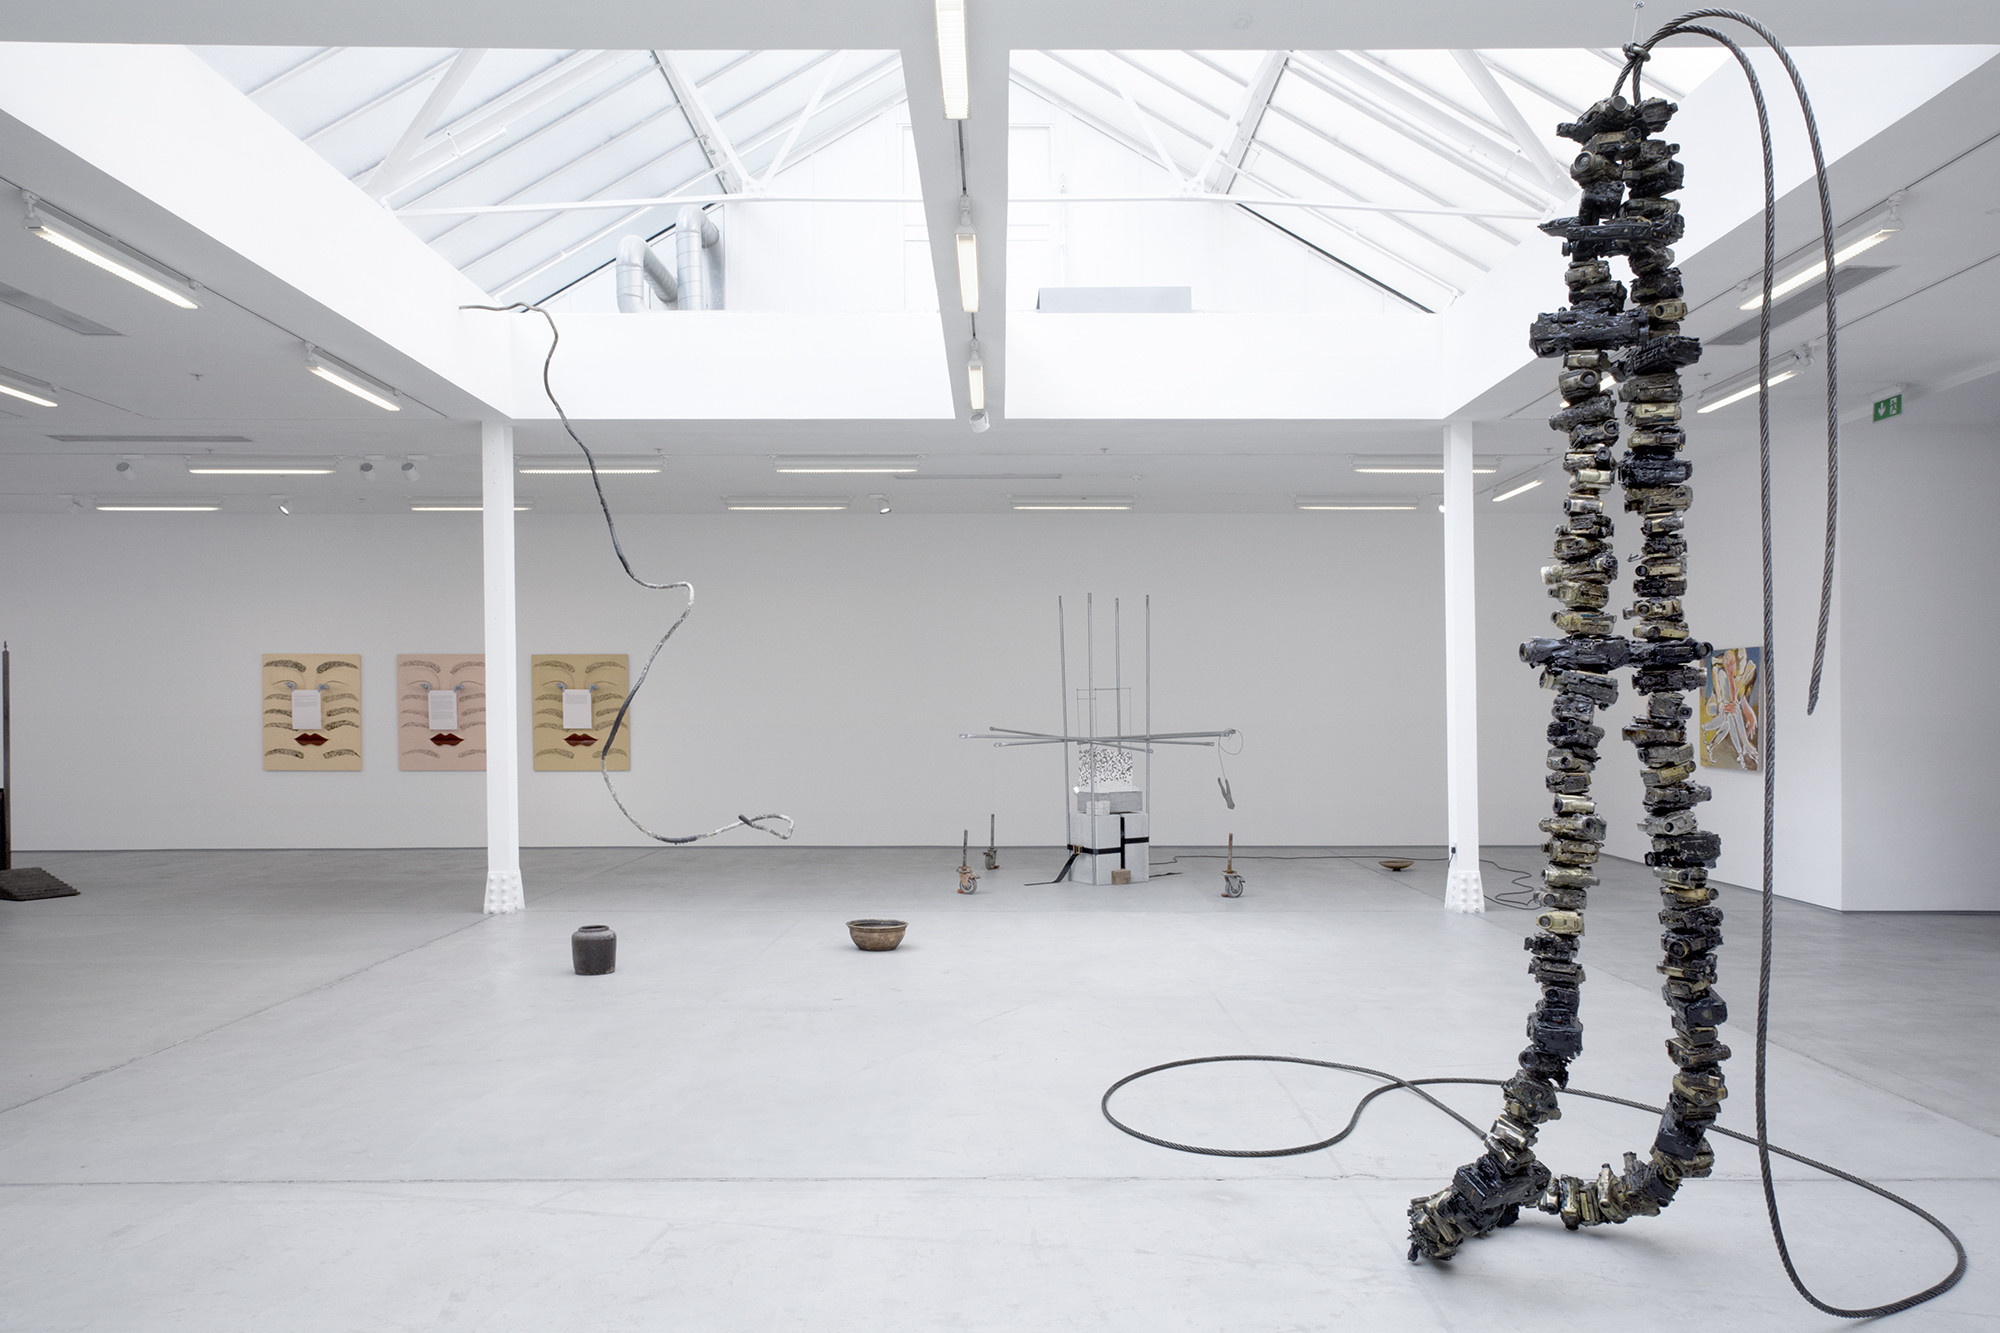 <p>Installation View, 2017</p>